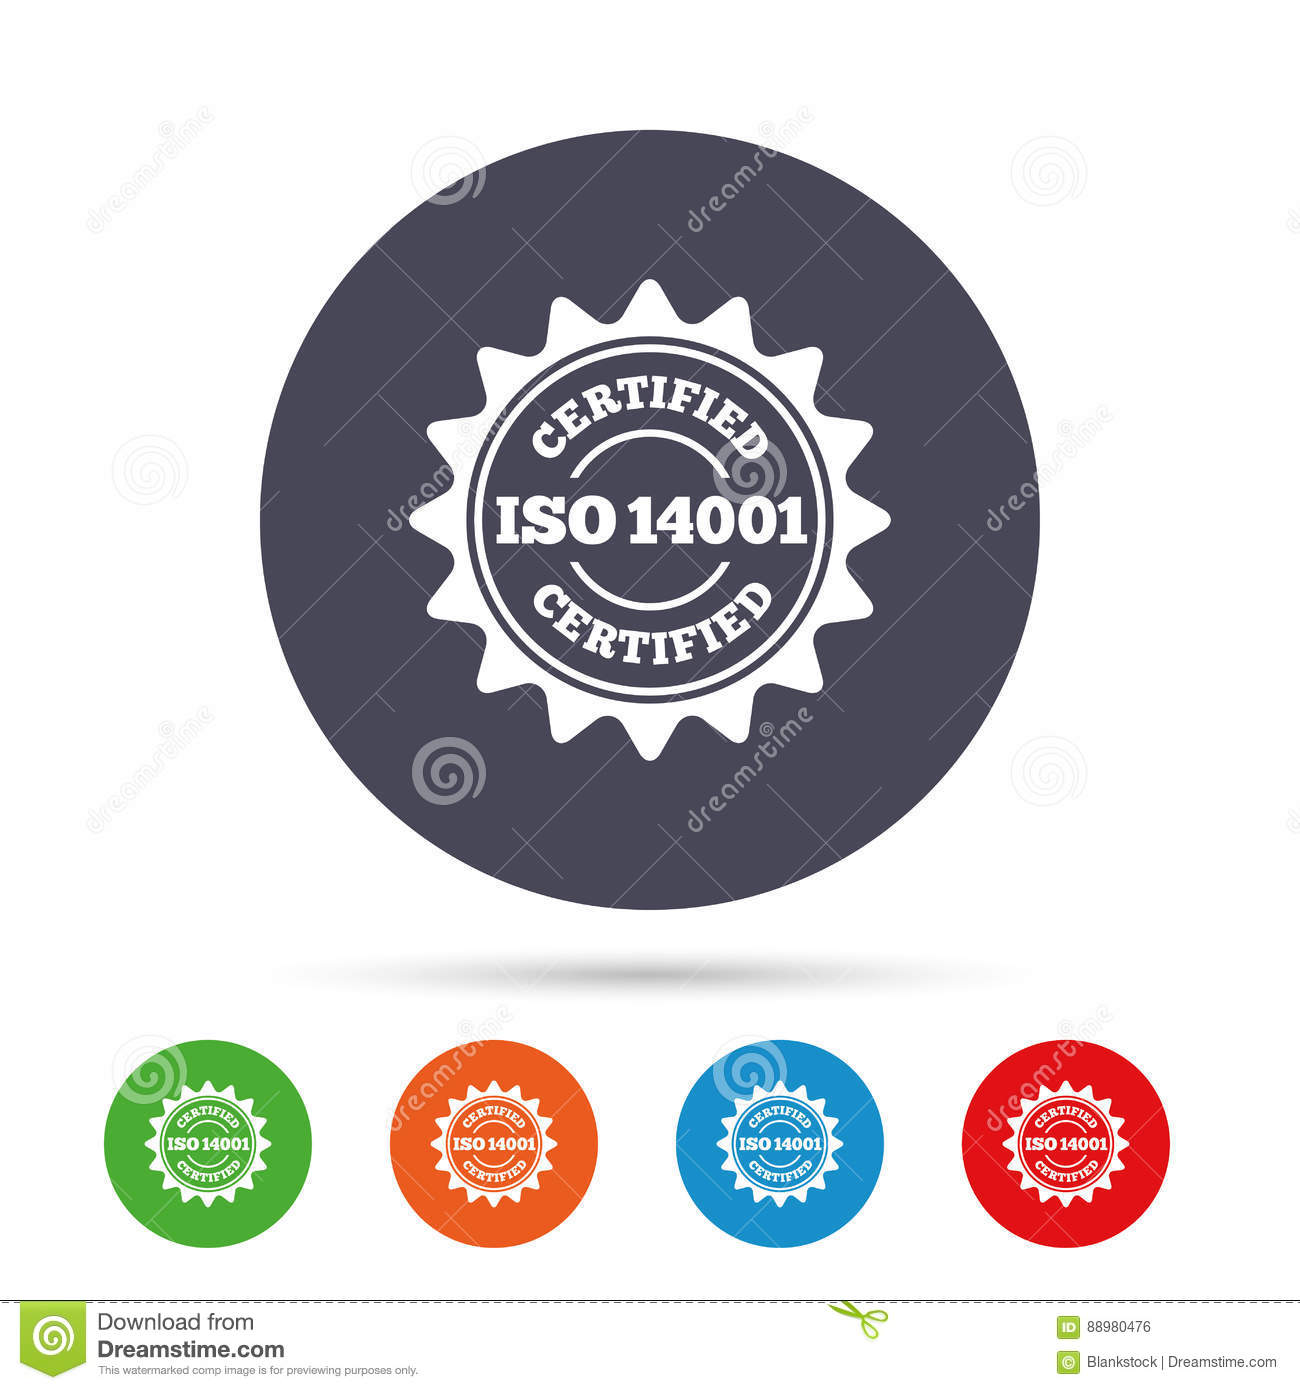 ISO 14001 Certified Sign Certification Stamp